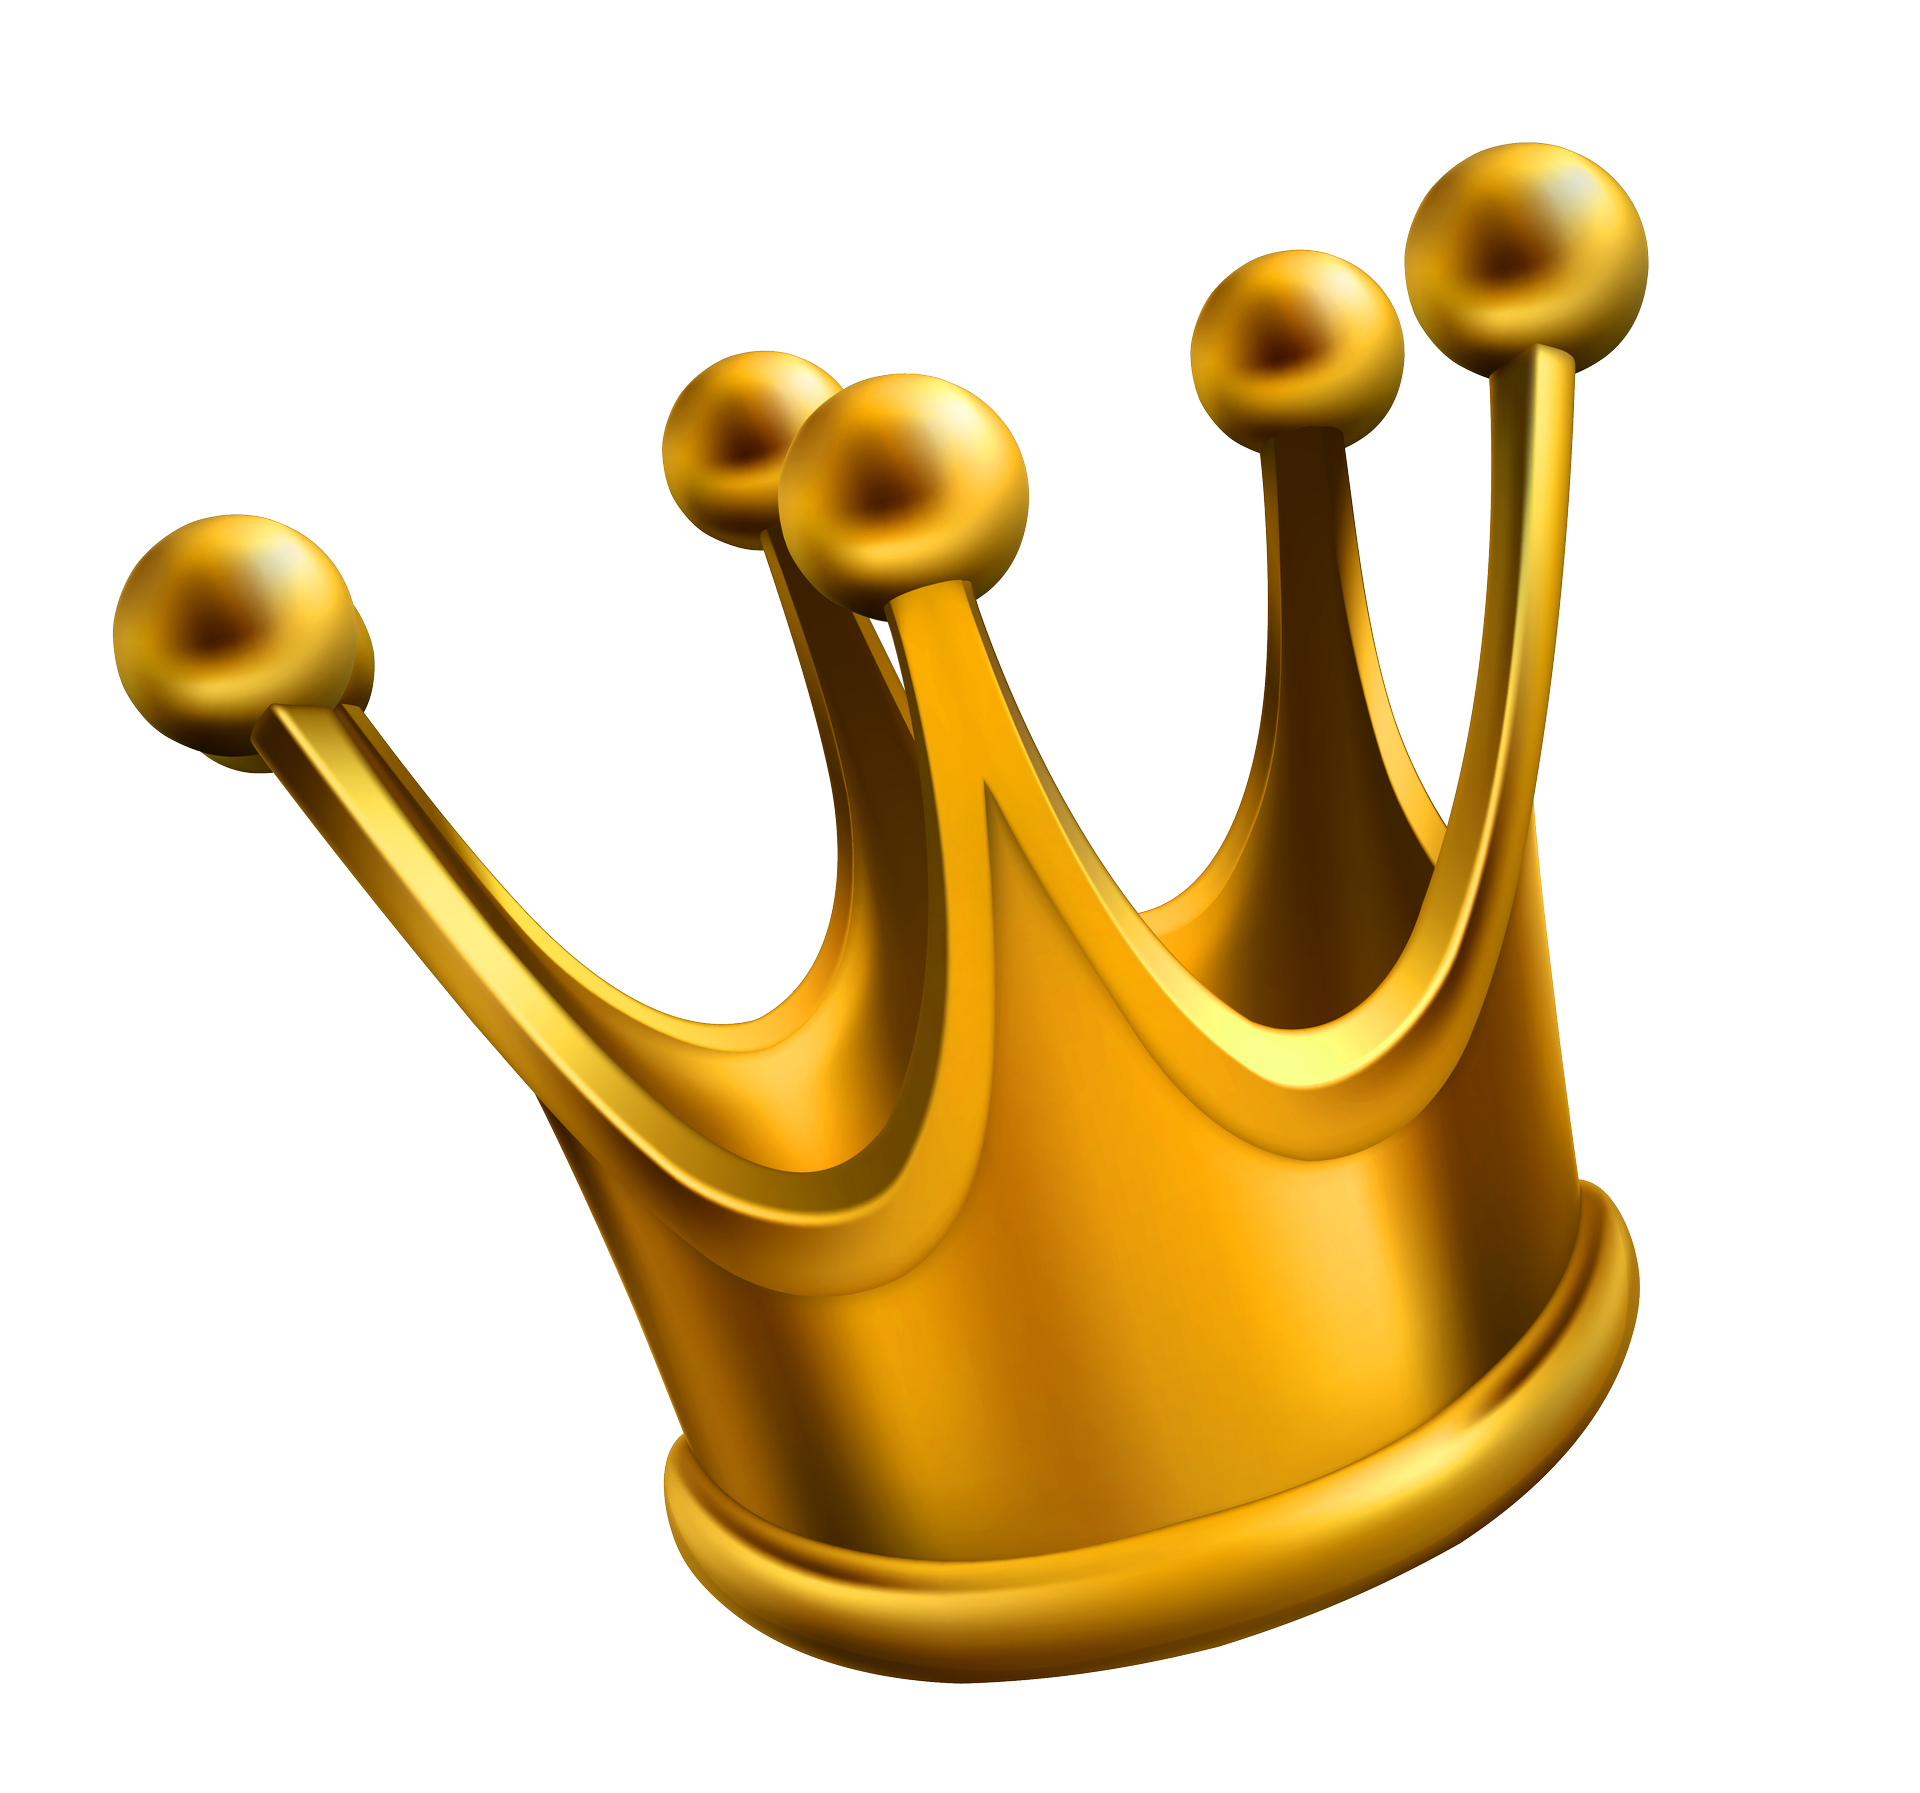 King crown clipart free png freeuse download Crown Clipart at GetDrawings.com | Free for personal use Crown ... png freeuse download